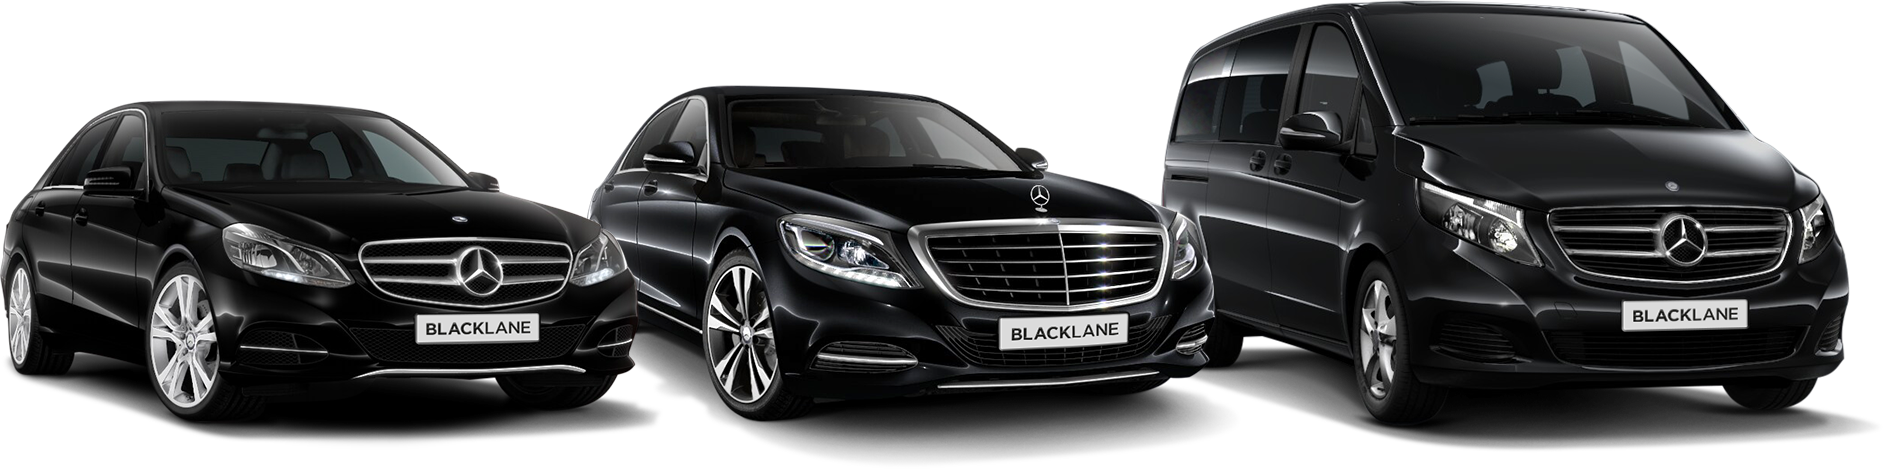 Blacklane cars